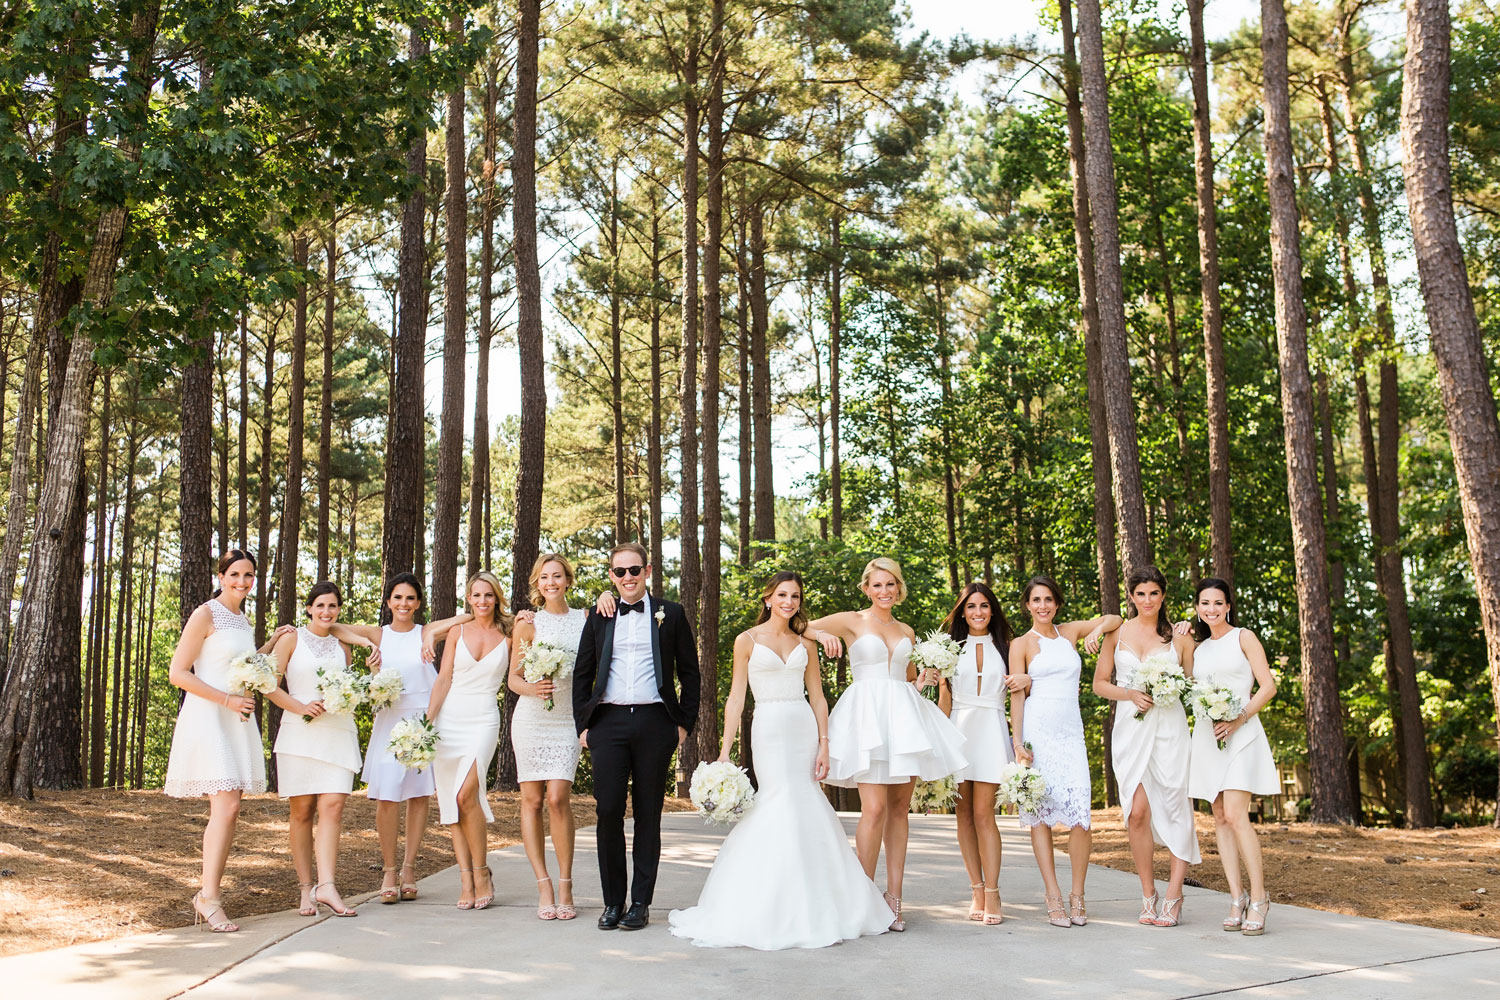 Inside Weddings Summer 2017 Issue Preview mismatched bridesmaids and bridesman in white dresses tuxedo